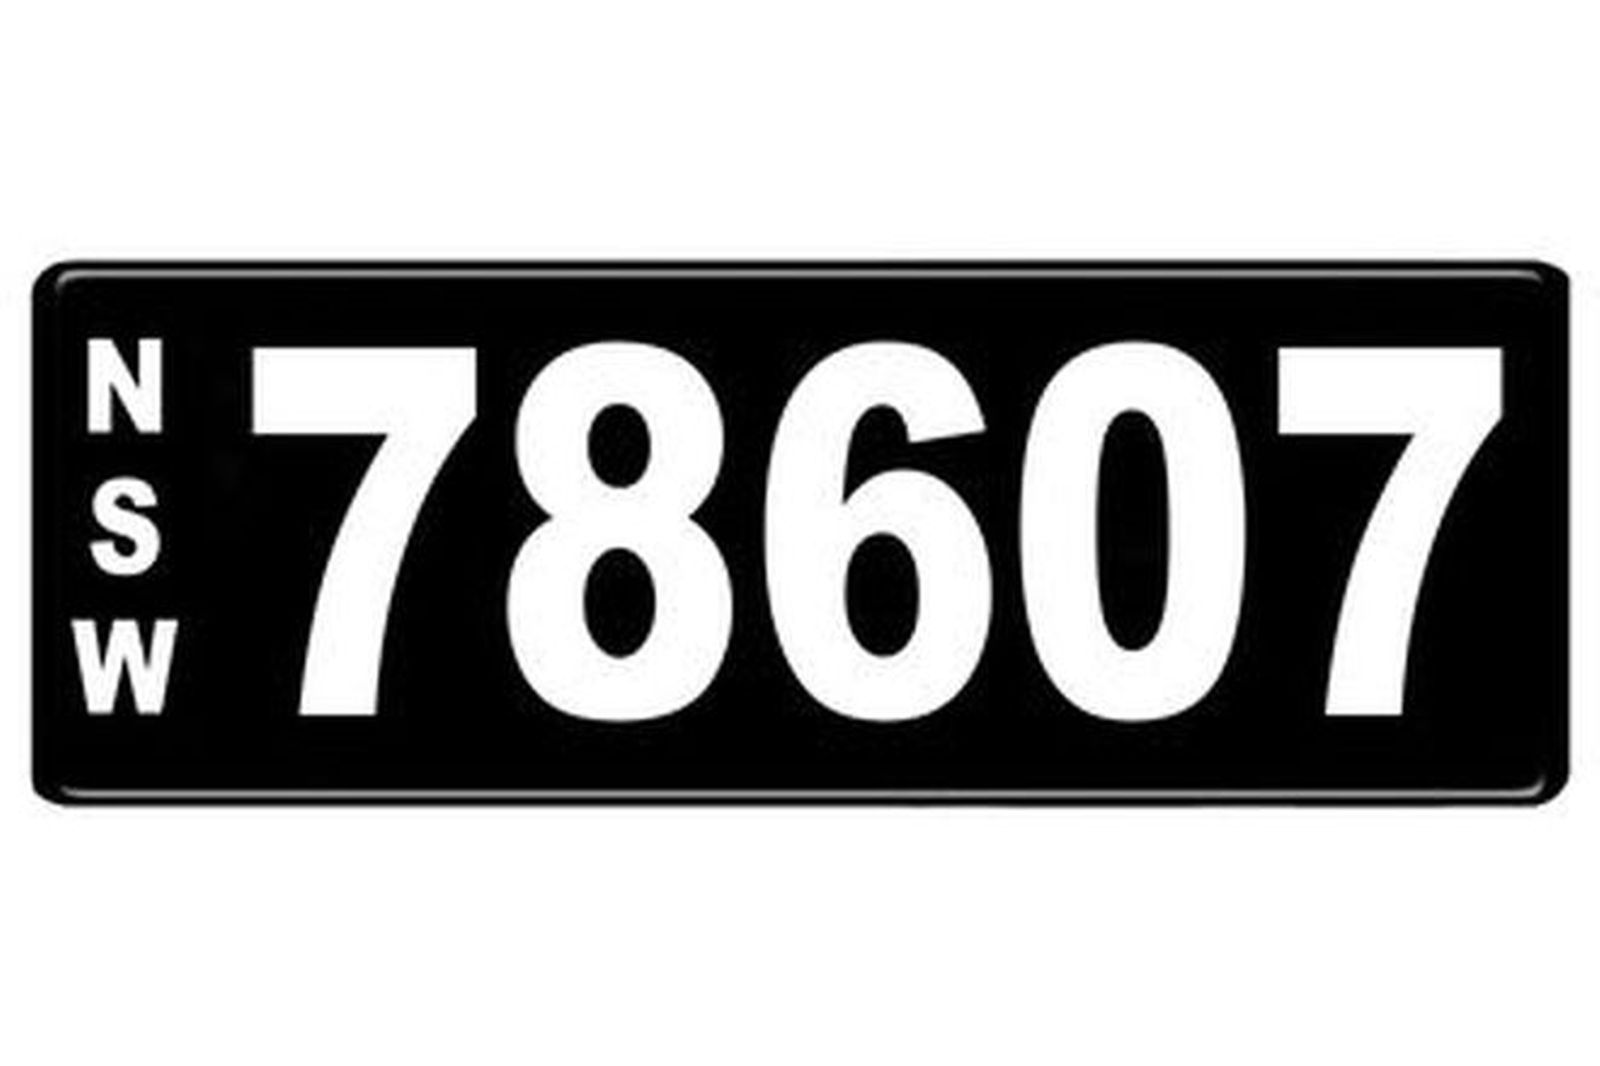 Number Plates - NSW Numerical Number Plates '78607'